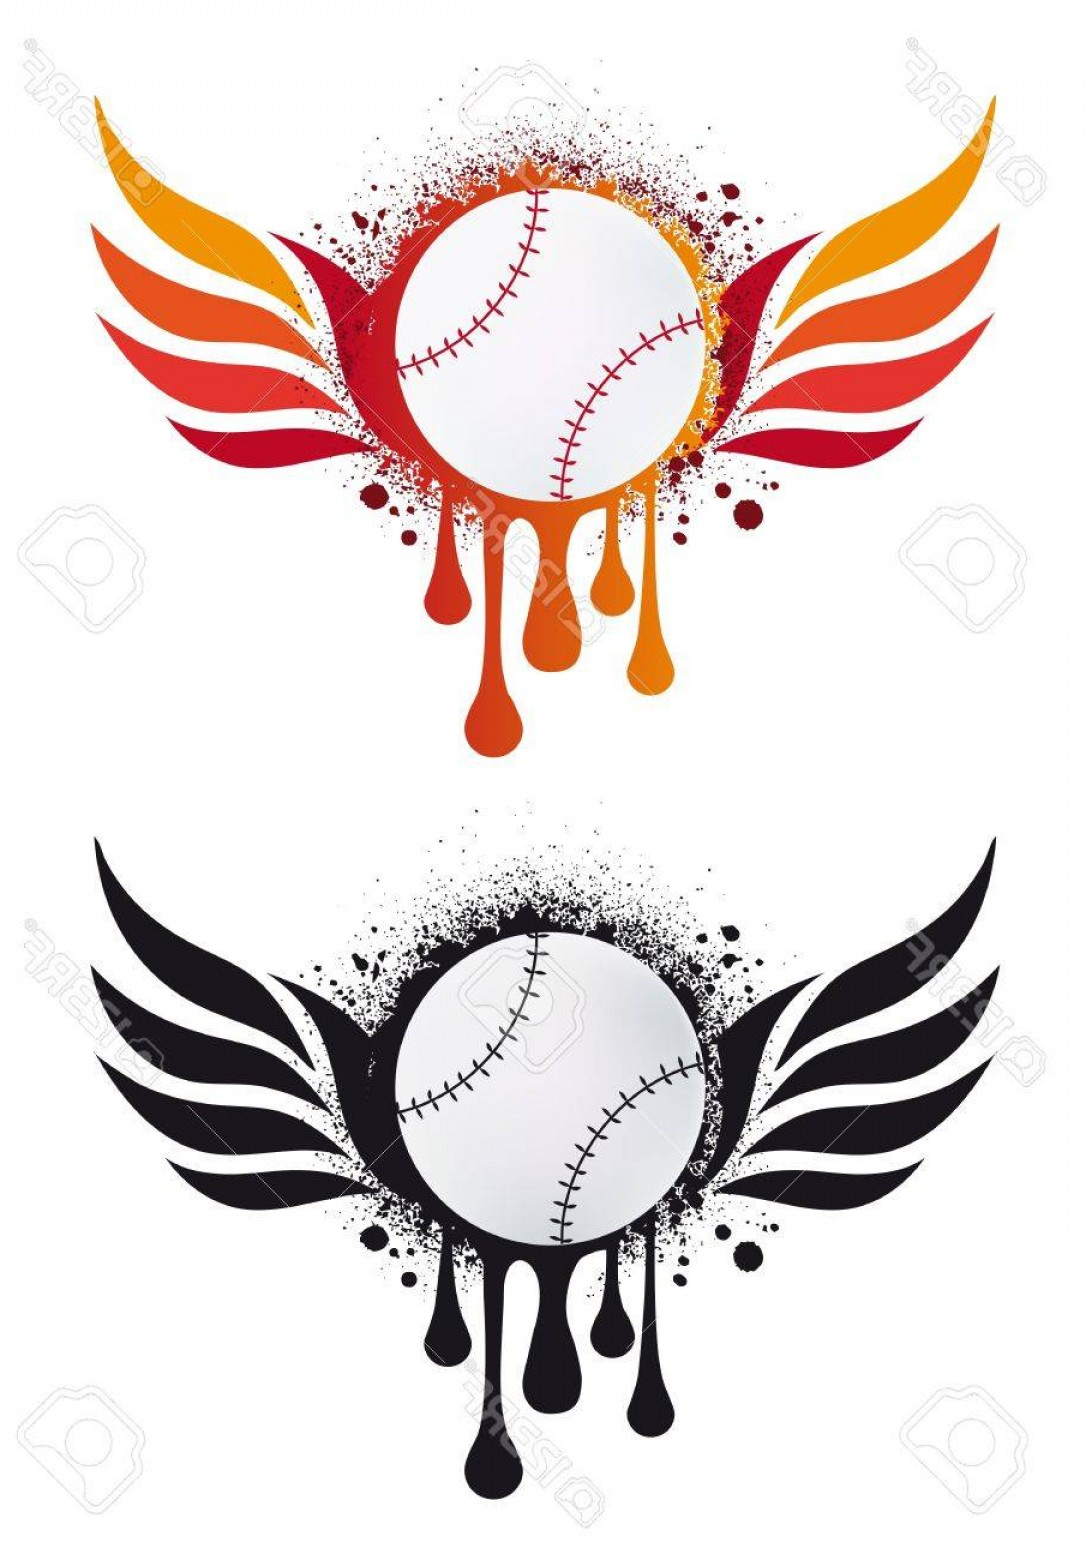 Baseball Tails Vector Clip Arts: Photogrungy Baseball With Fire Wings And Drops Vector